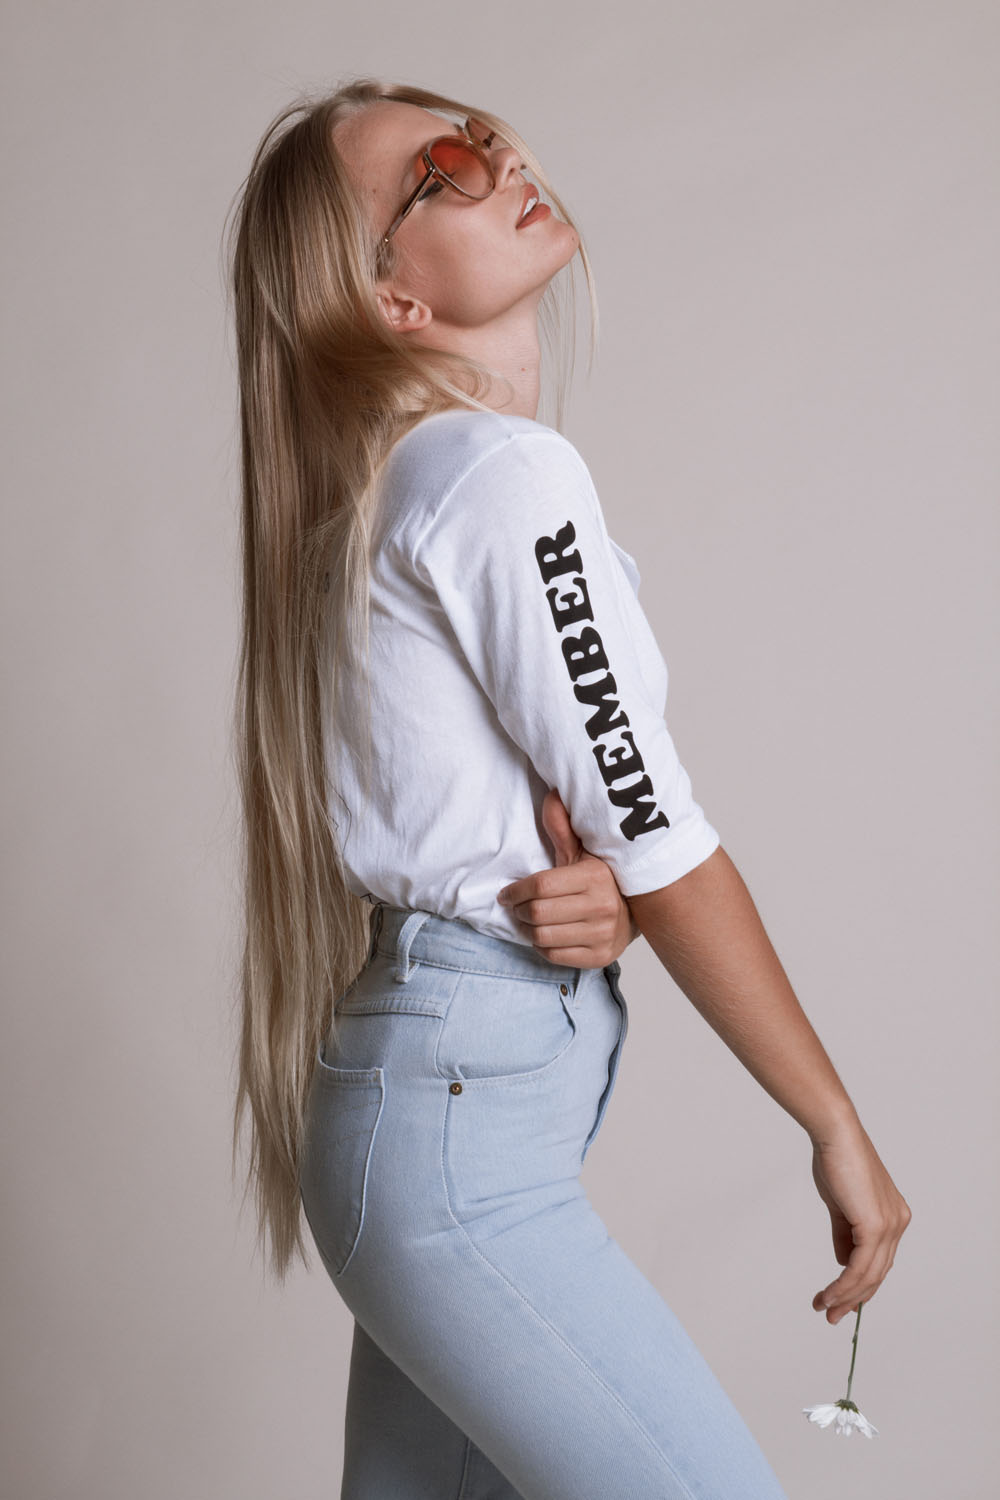 Introducing Quot Babes Do It Better Quot Summer Of Love Capsule